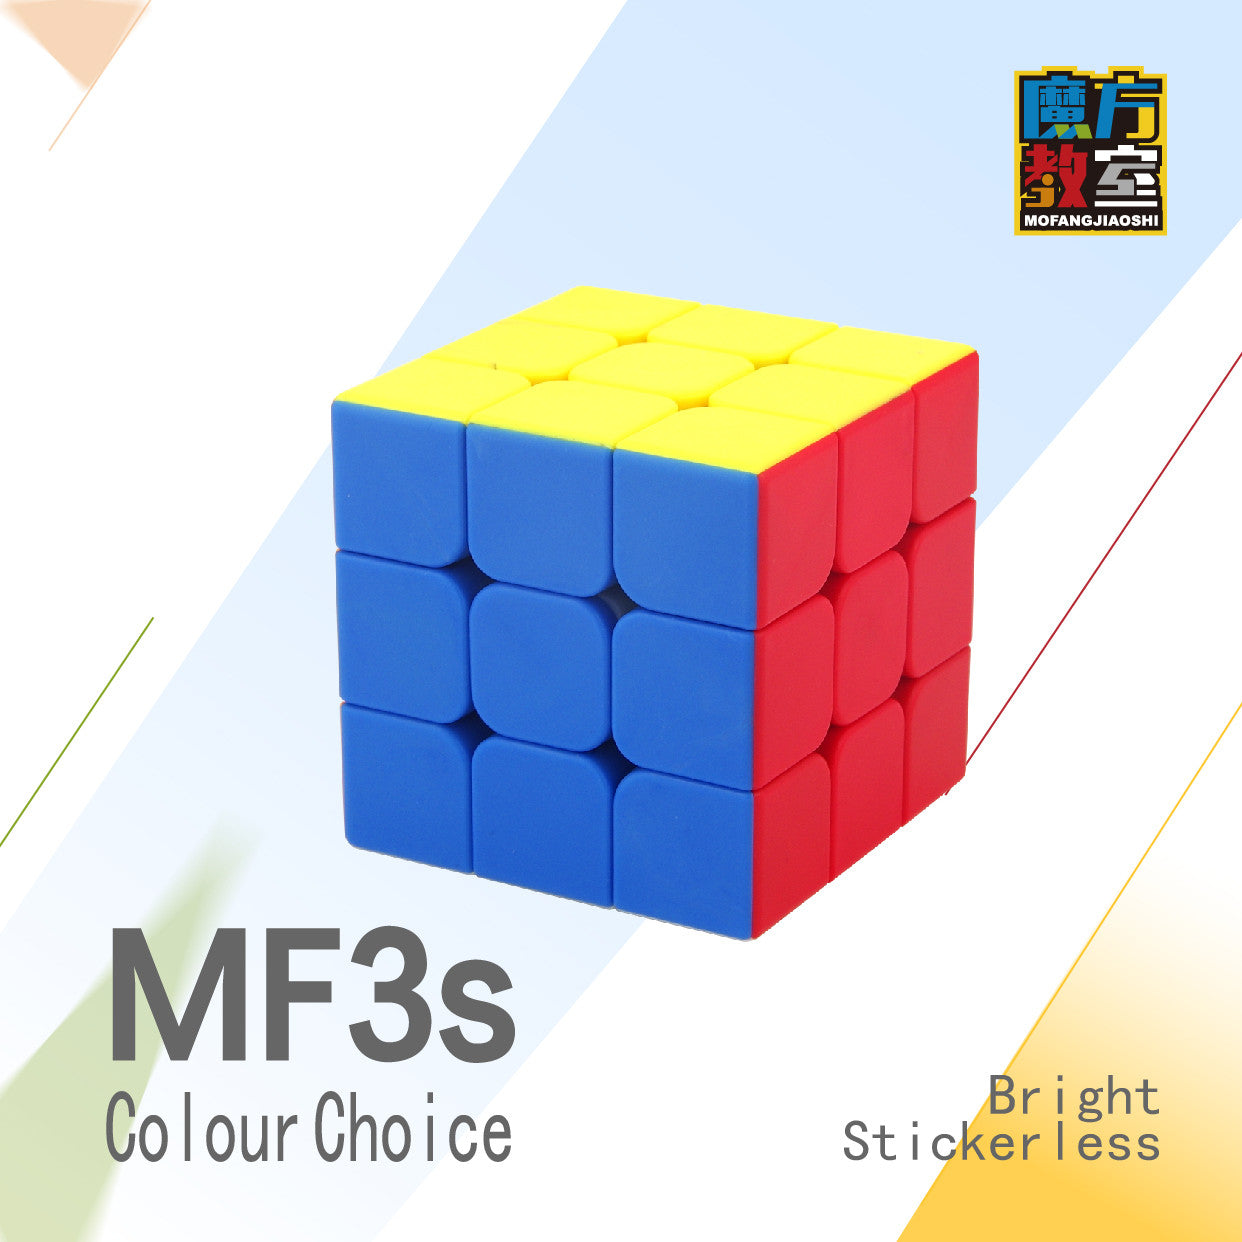 D-FantiX Mofang Jiaoshi Meilong 3x3 Speed Cube (Colorful)